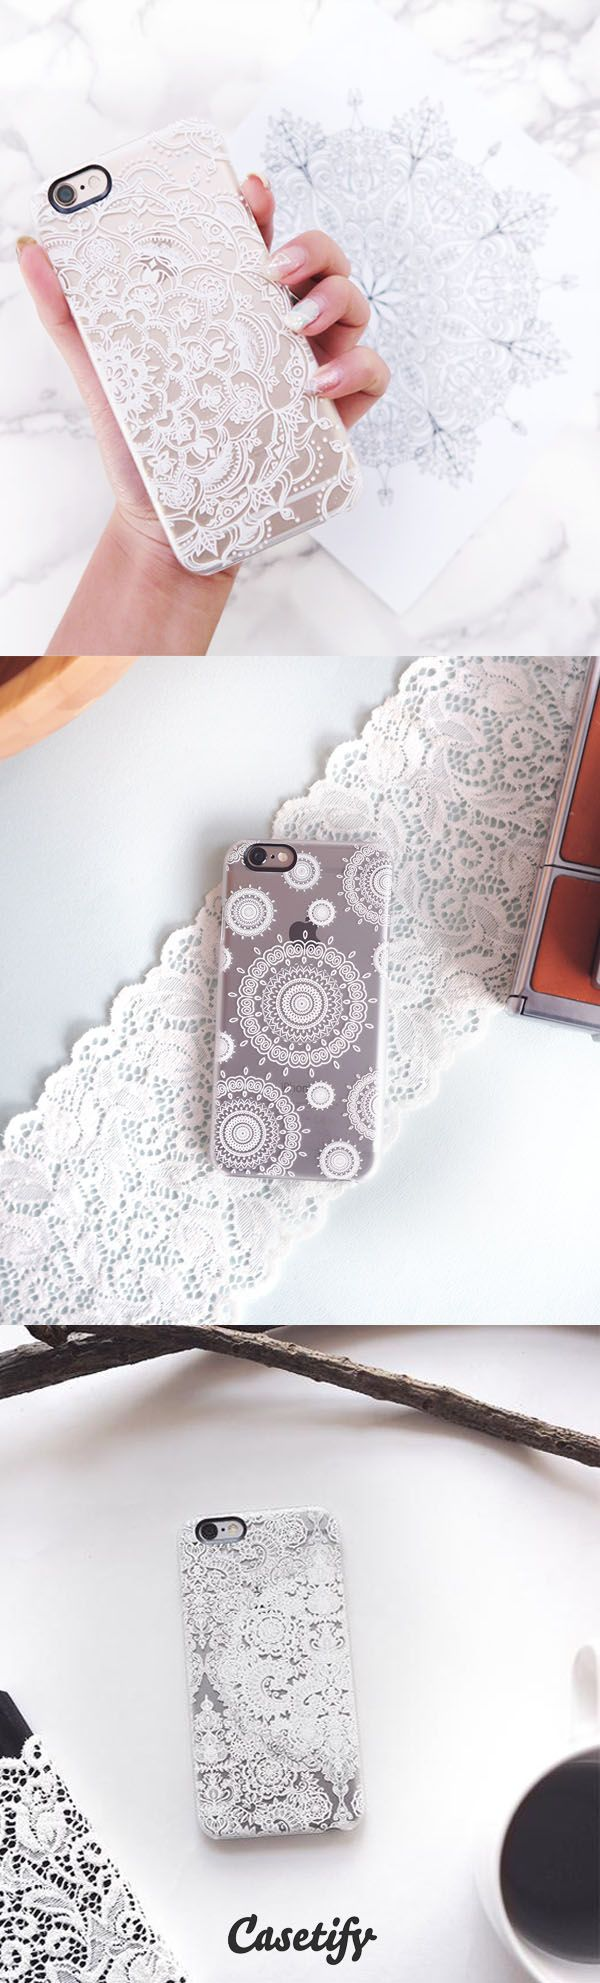 Most favorite Lace iPhone 6 protective phone case designs | Click through to see more iPhone phone case idea >>> https://www.casetify.com/collections/lace | @Casetify  https://www.casetify.com/collections/lace#/